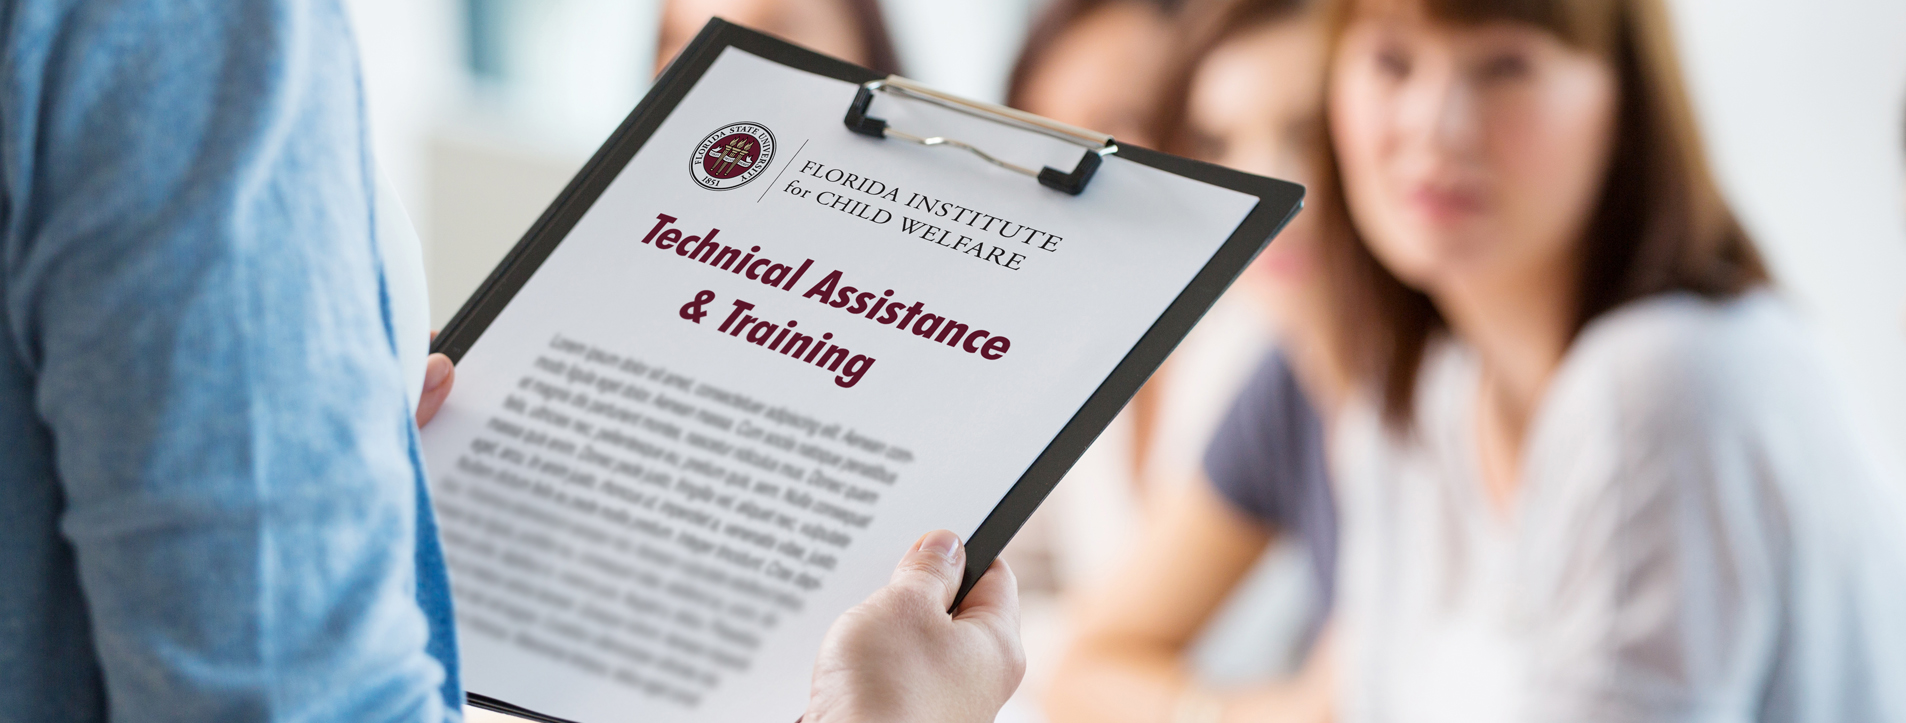 Technical assistance and training banner